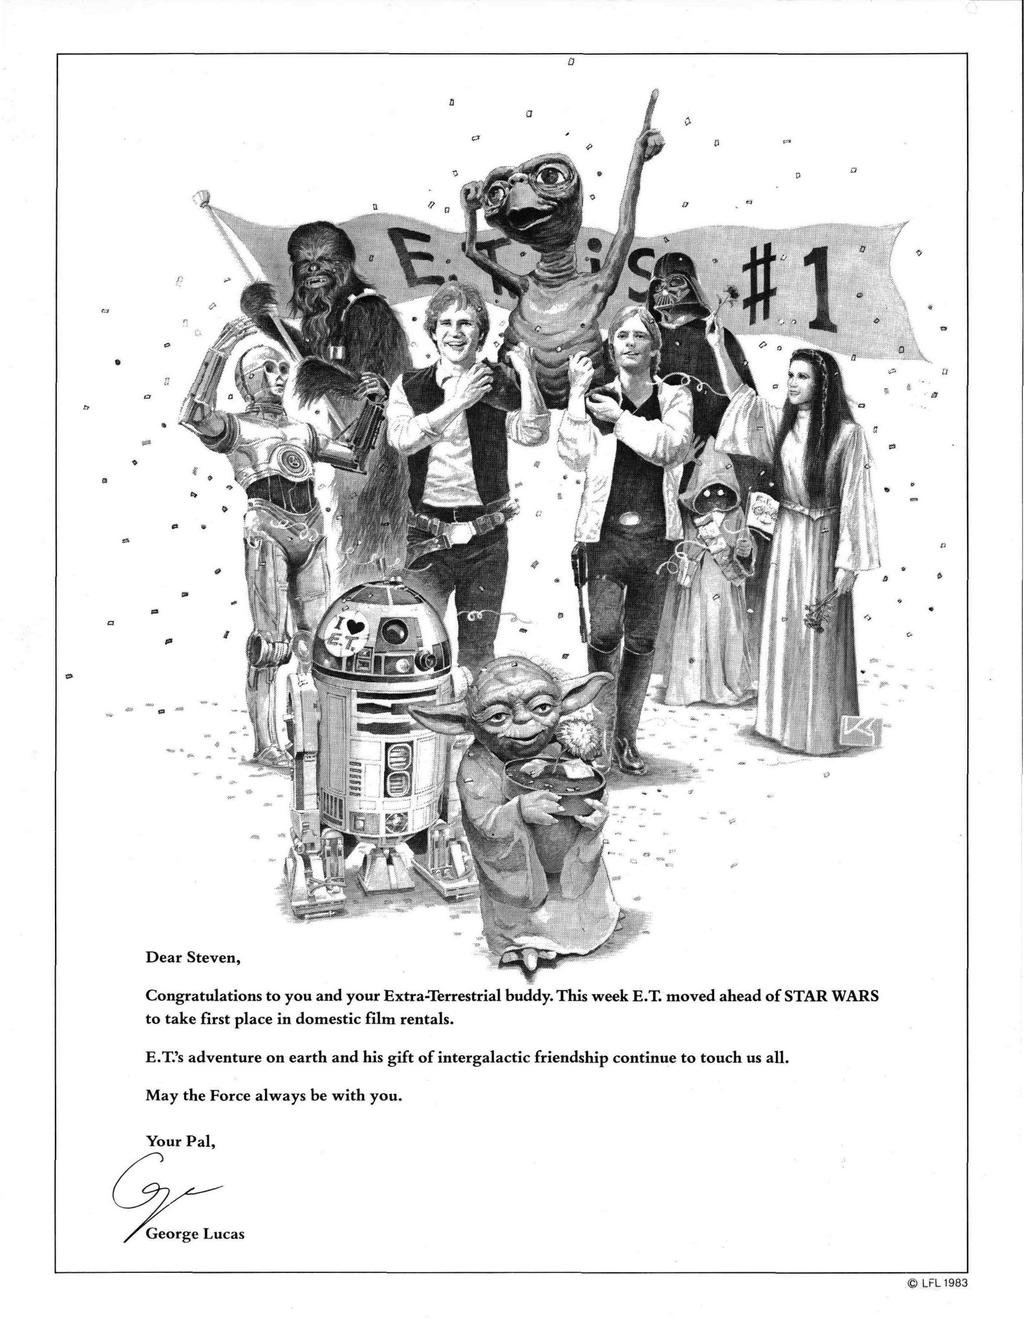 George Lucas' Ad Congratulating Steven Spielberg For E.T. The Extra-Terrestrial